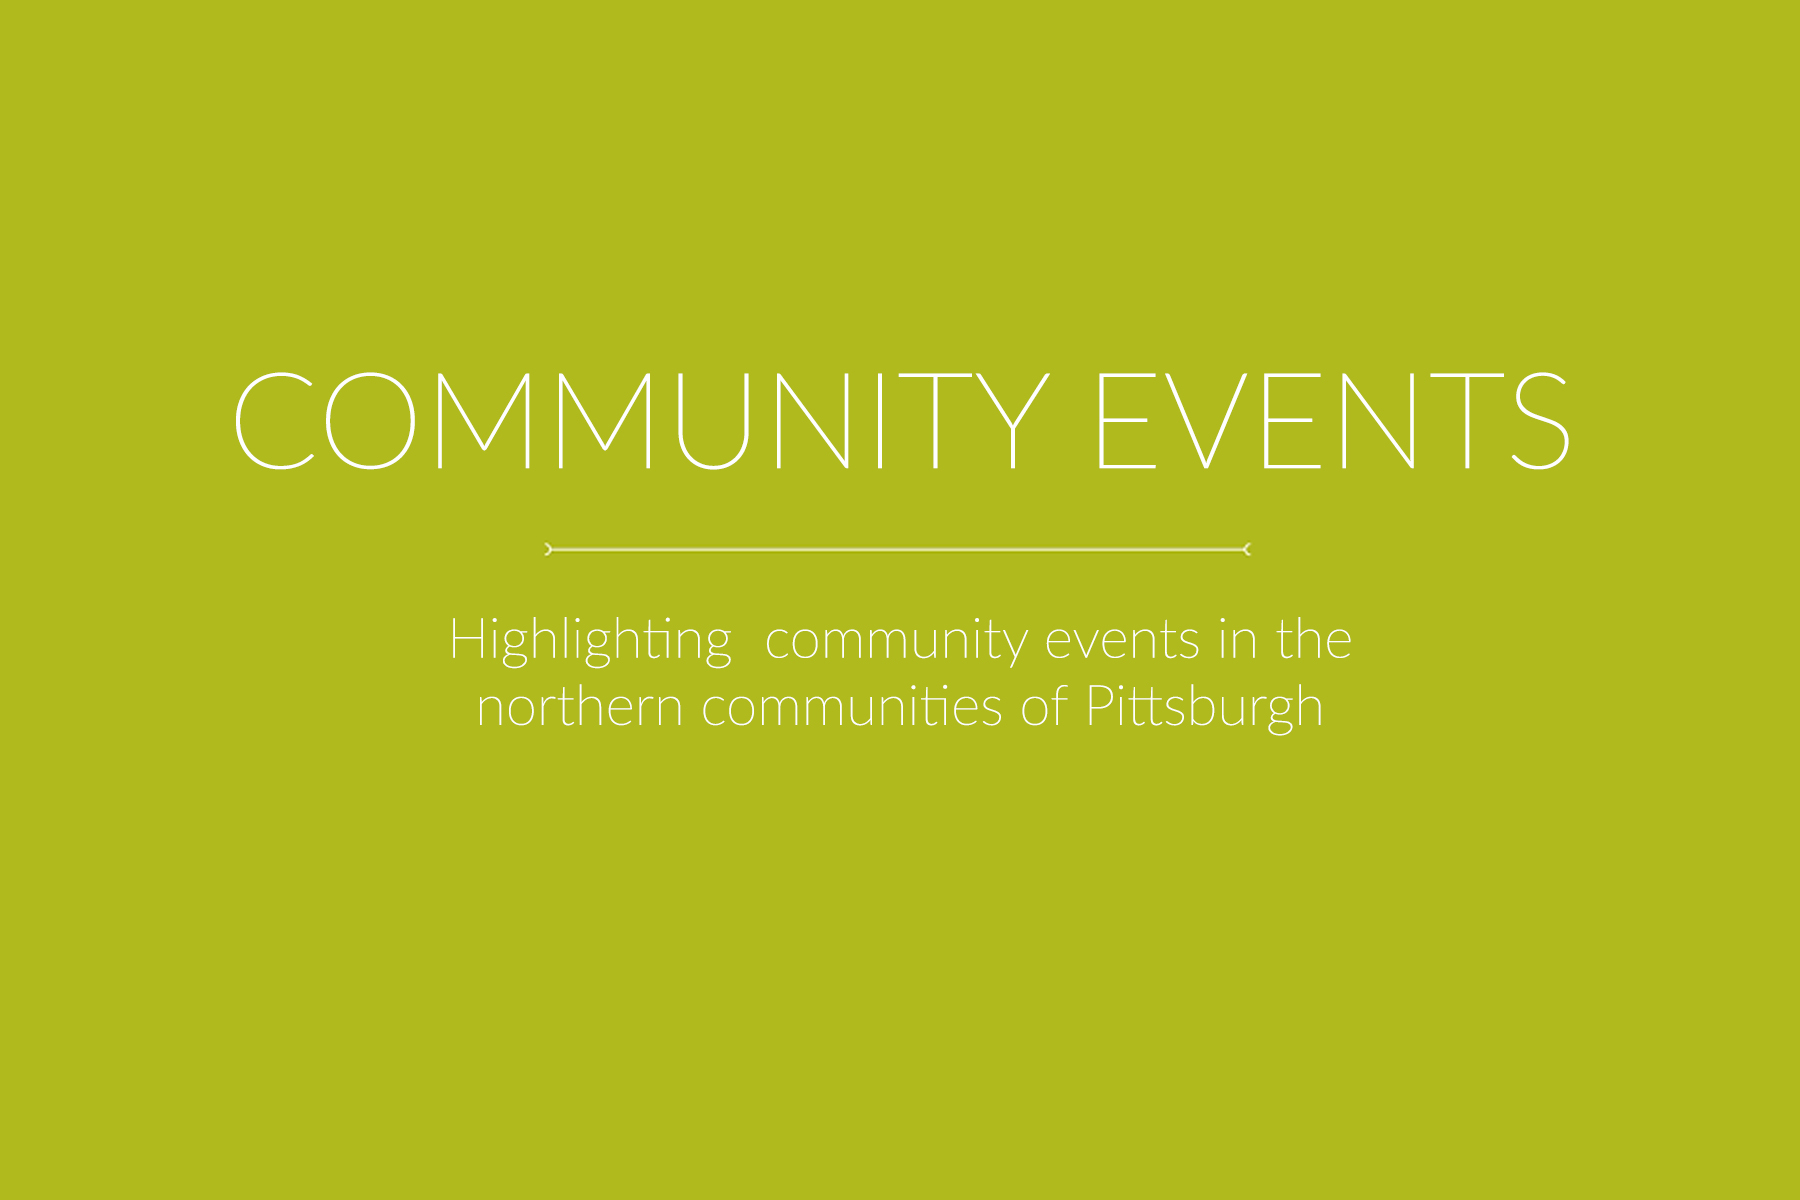 Community Events, March 2018 | North Hills Monthly